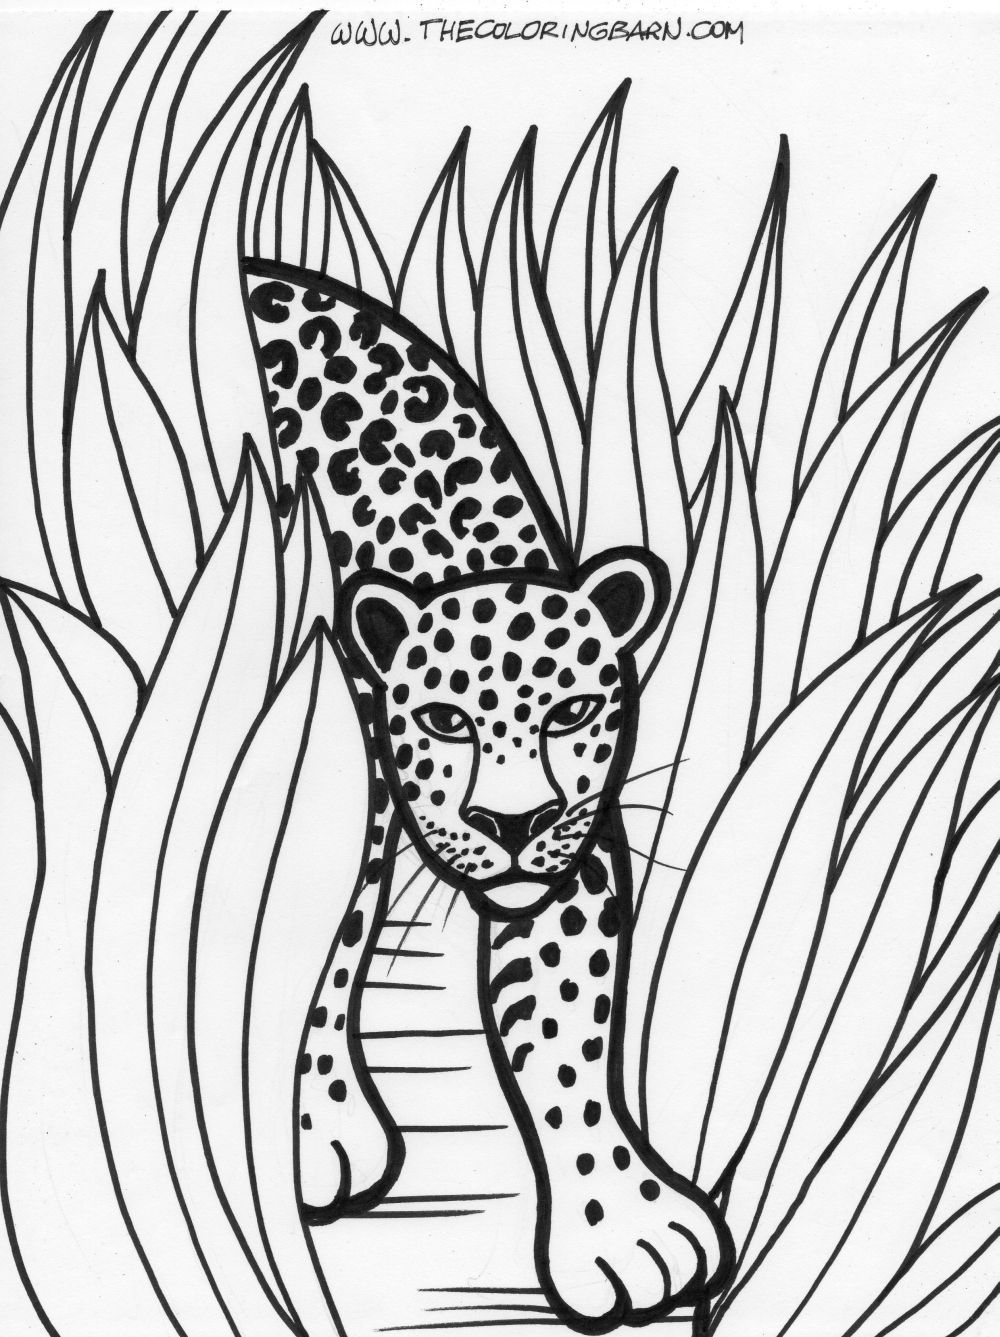 cc7b243c13df070ef71780dee94ae7c9 » Jungle Scene Coloring Pages